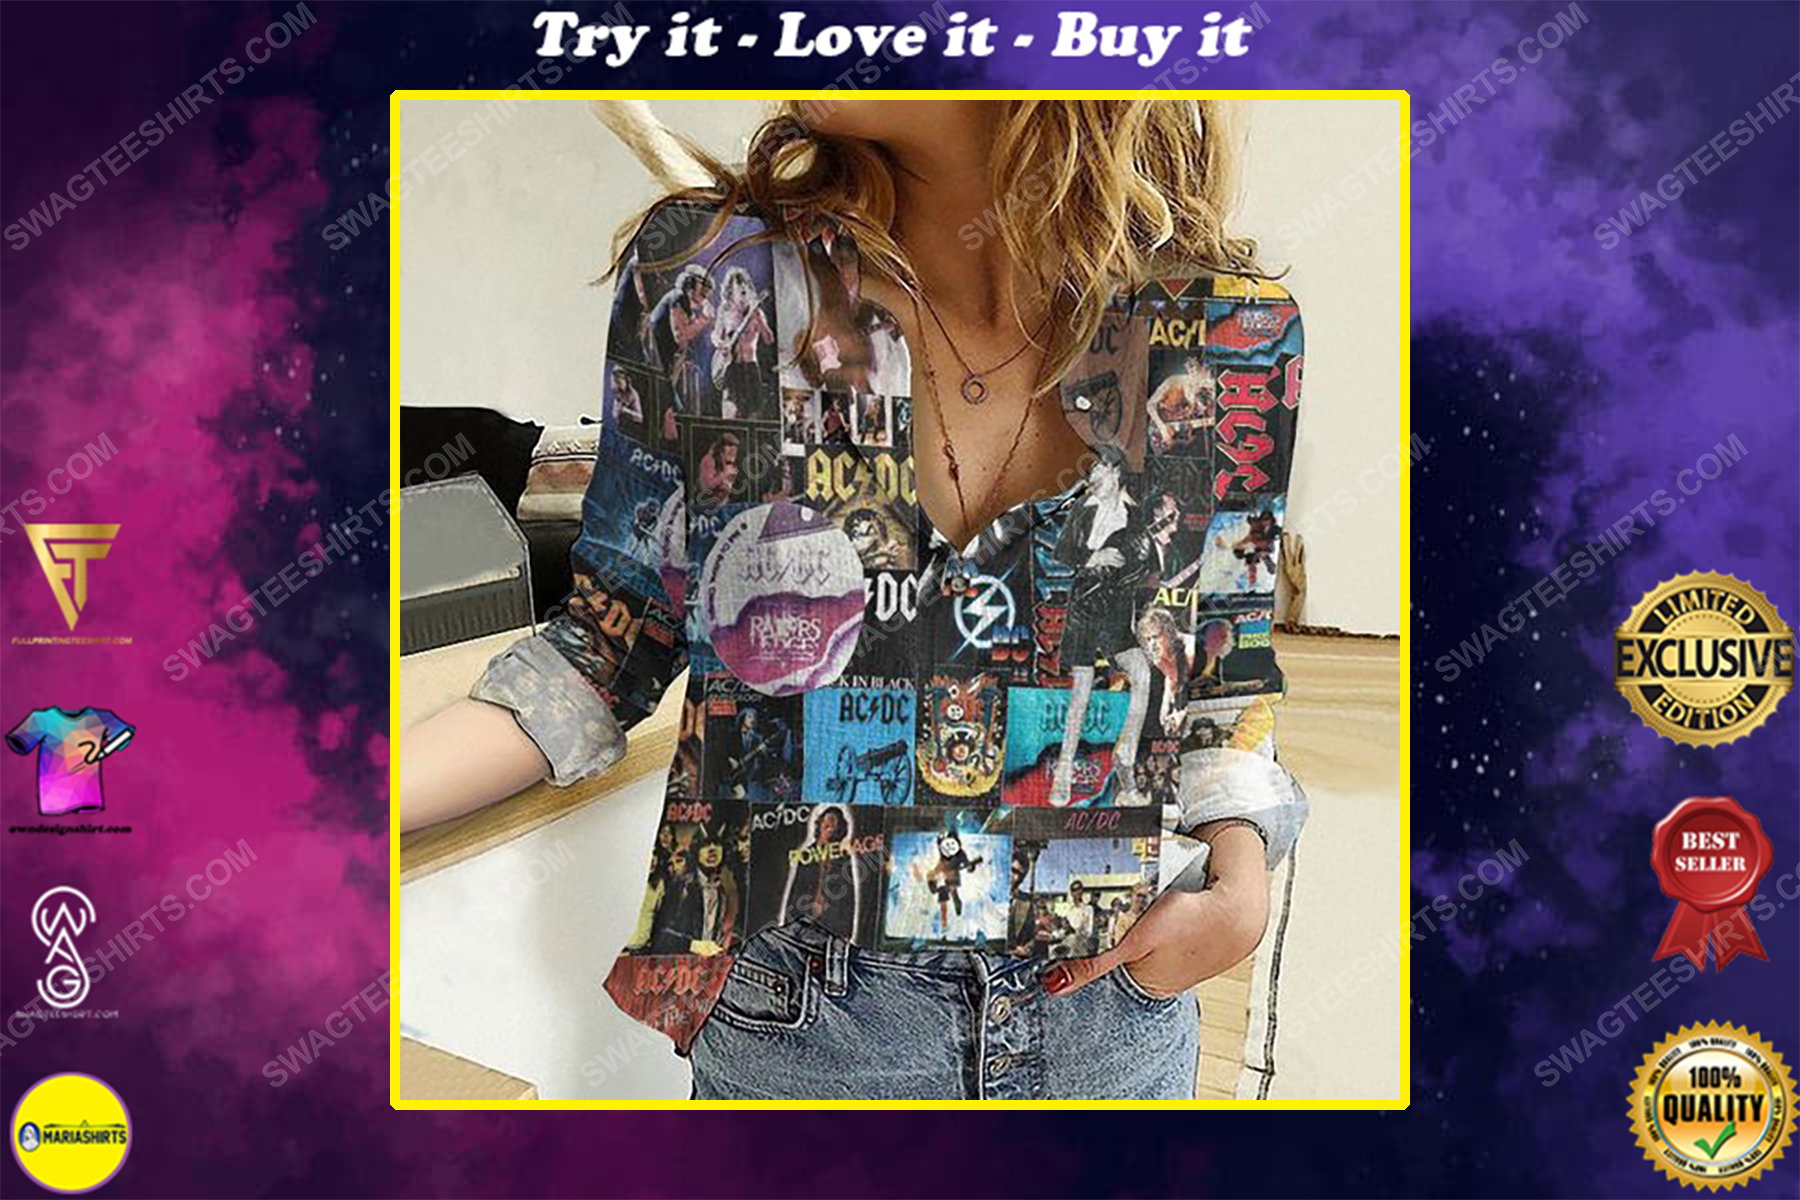 AC DC cover album fully printed poly cotton casual shirt